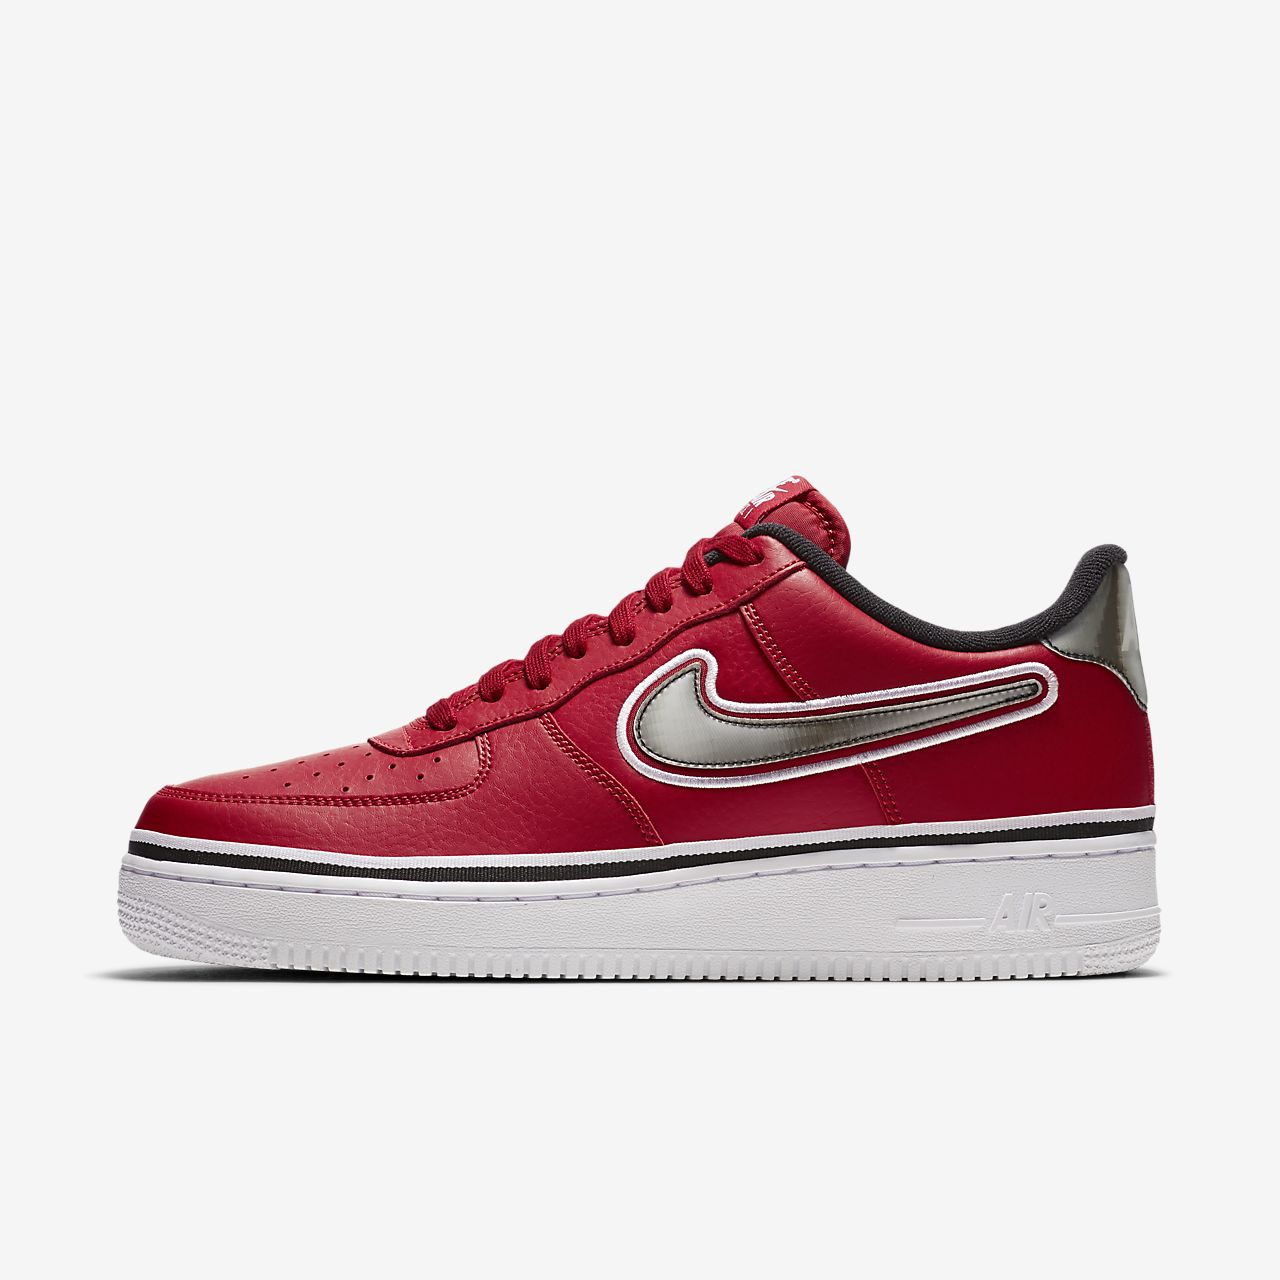 new concept 1597b 37ca7 ... Chaussure Nike Air Force 1 NBA Low (Chicago Bulls) pour Homme